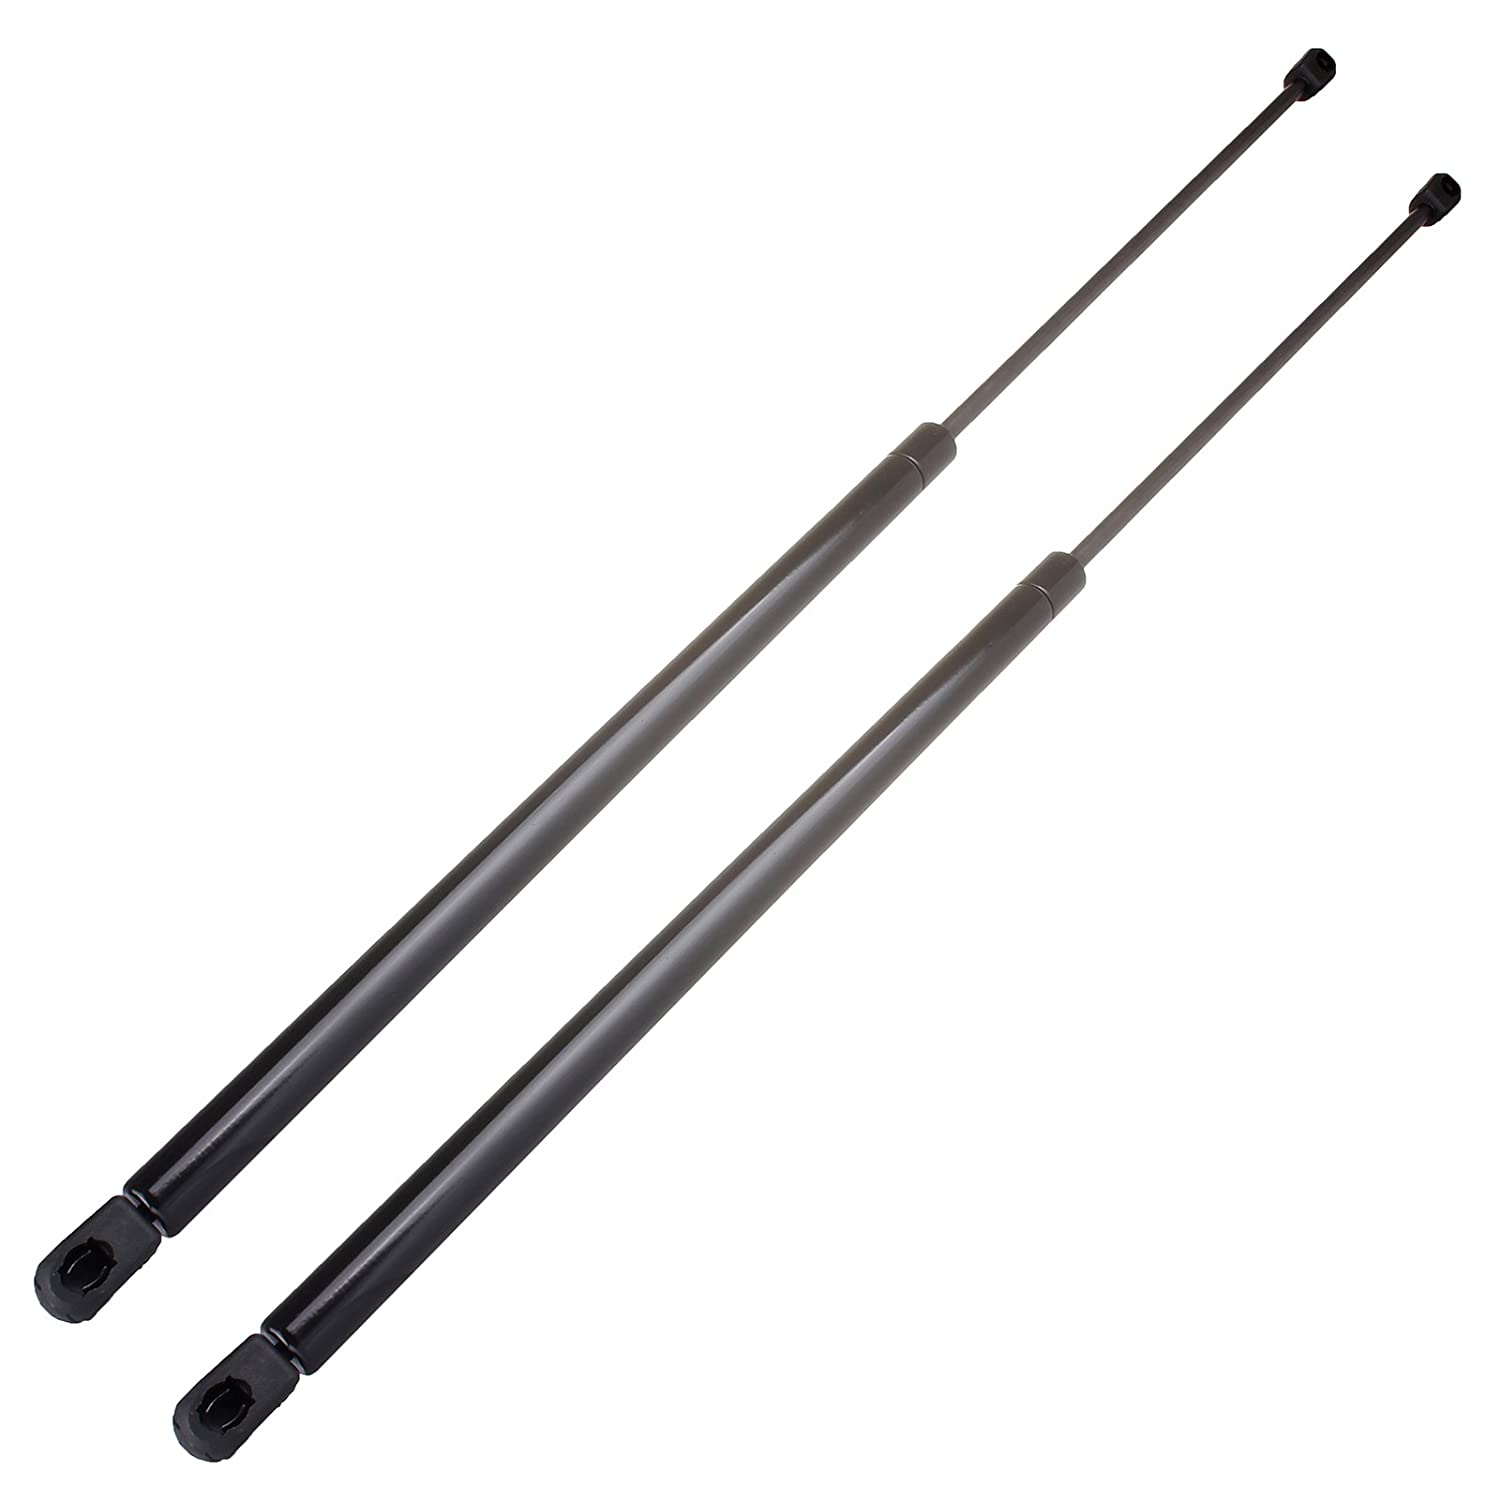 2007-2013 Toyota Tundra SCITOO Front Hood Lift Supports Struts Gas Springs Shocks fit 2008-2014 Toyota Sequoia